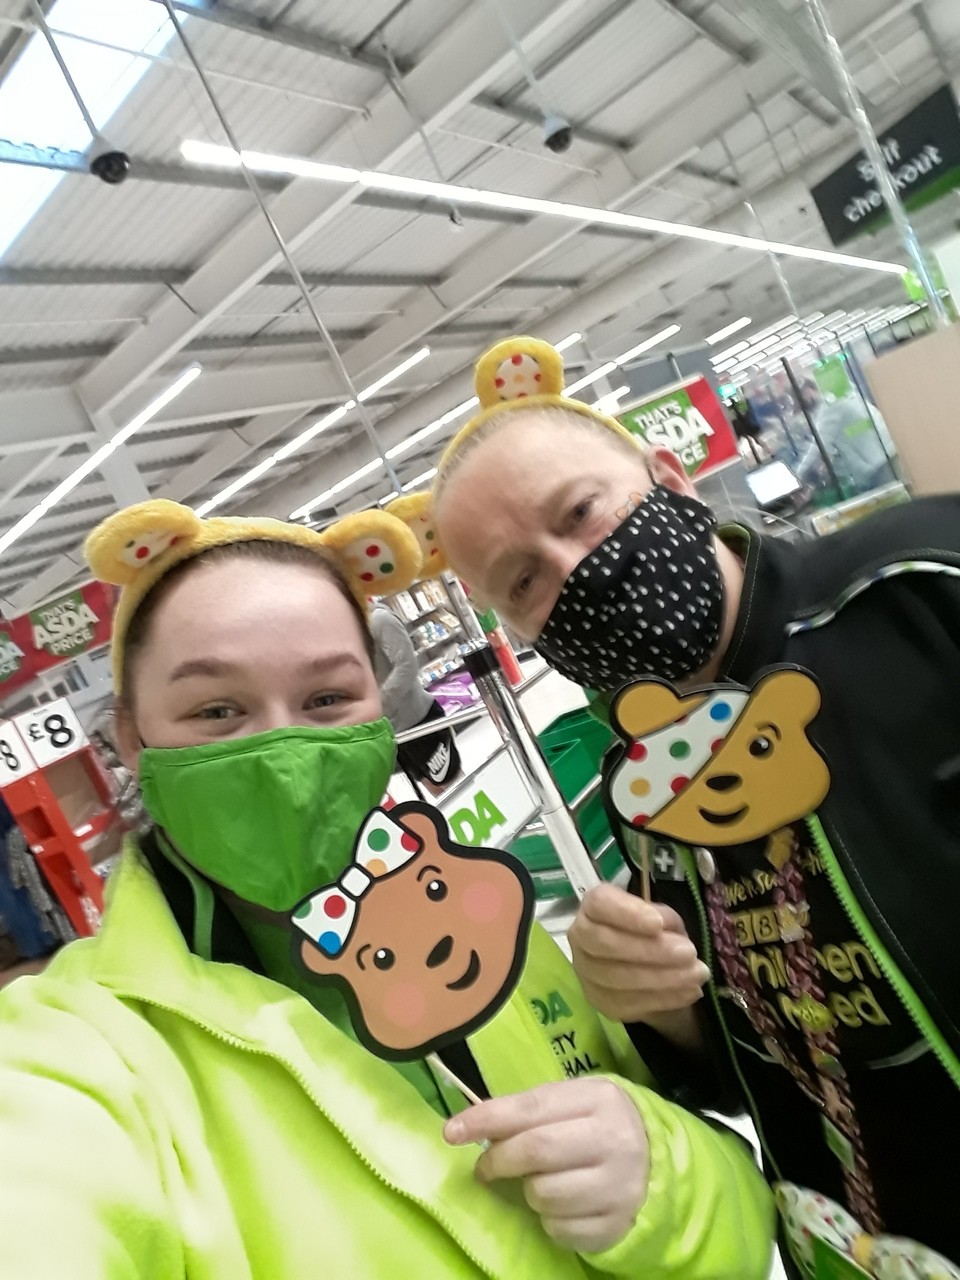 Children in need  at Asda  Swinton  . Oh the fun we had on the lucky dip | Asda Swinton